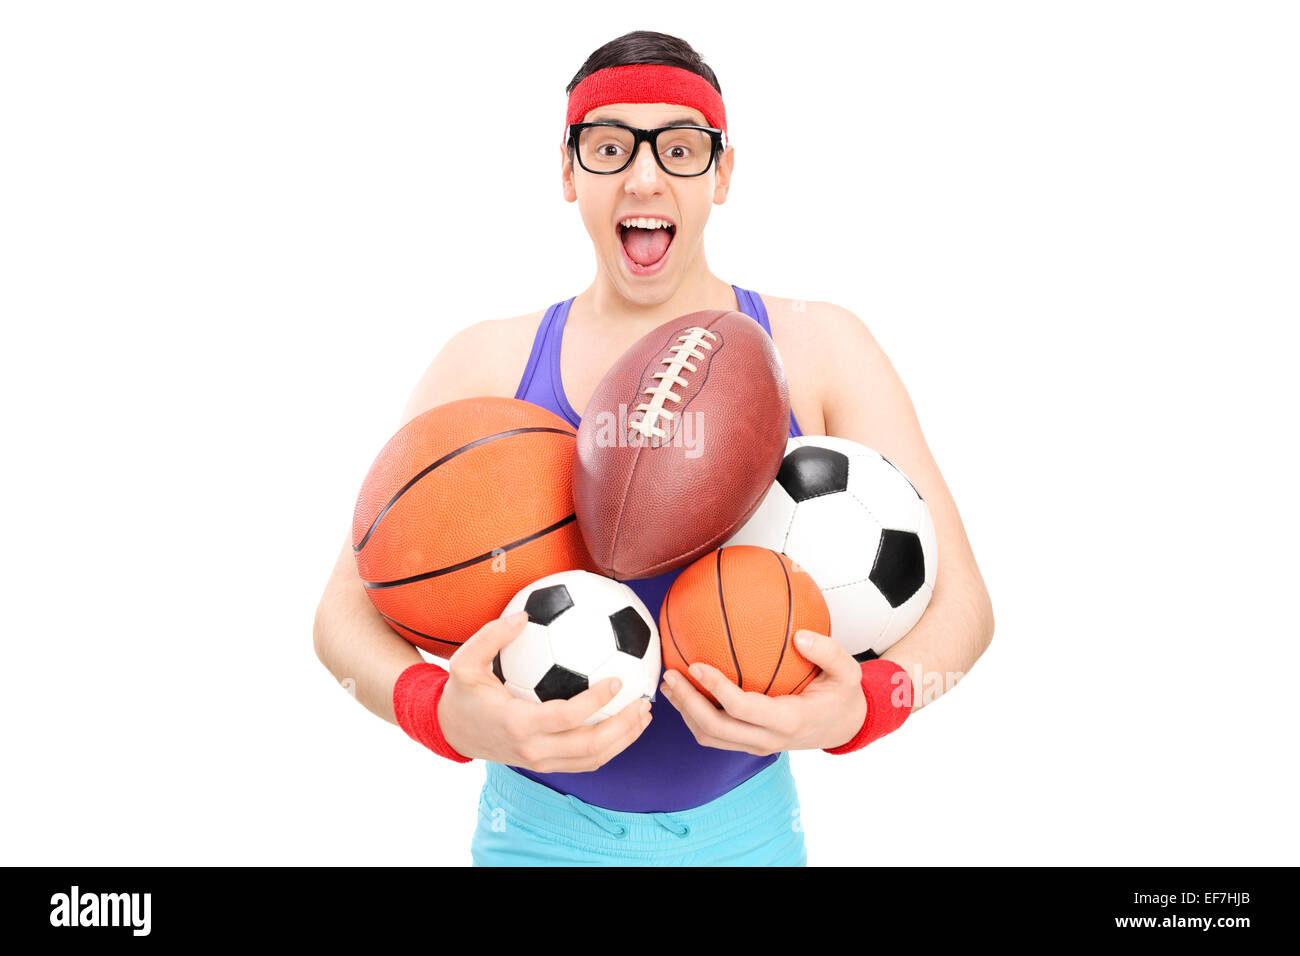 Nerdy guy holding a bunch of sports balls isolated on white background - Stock Image